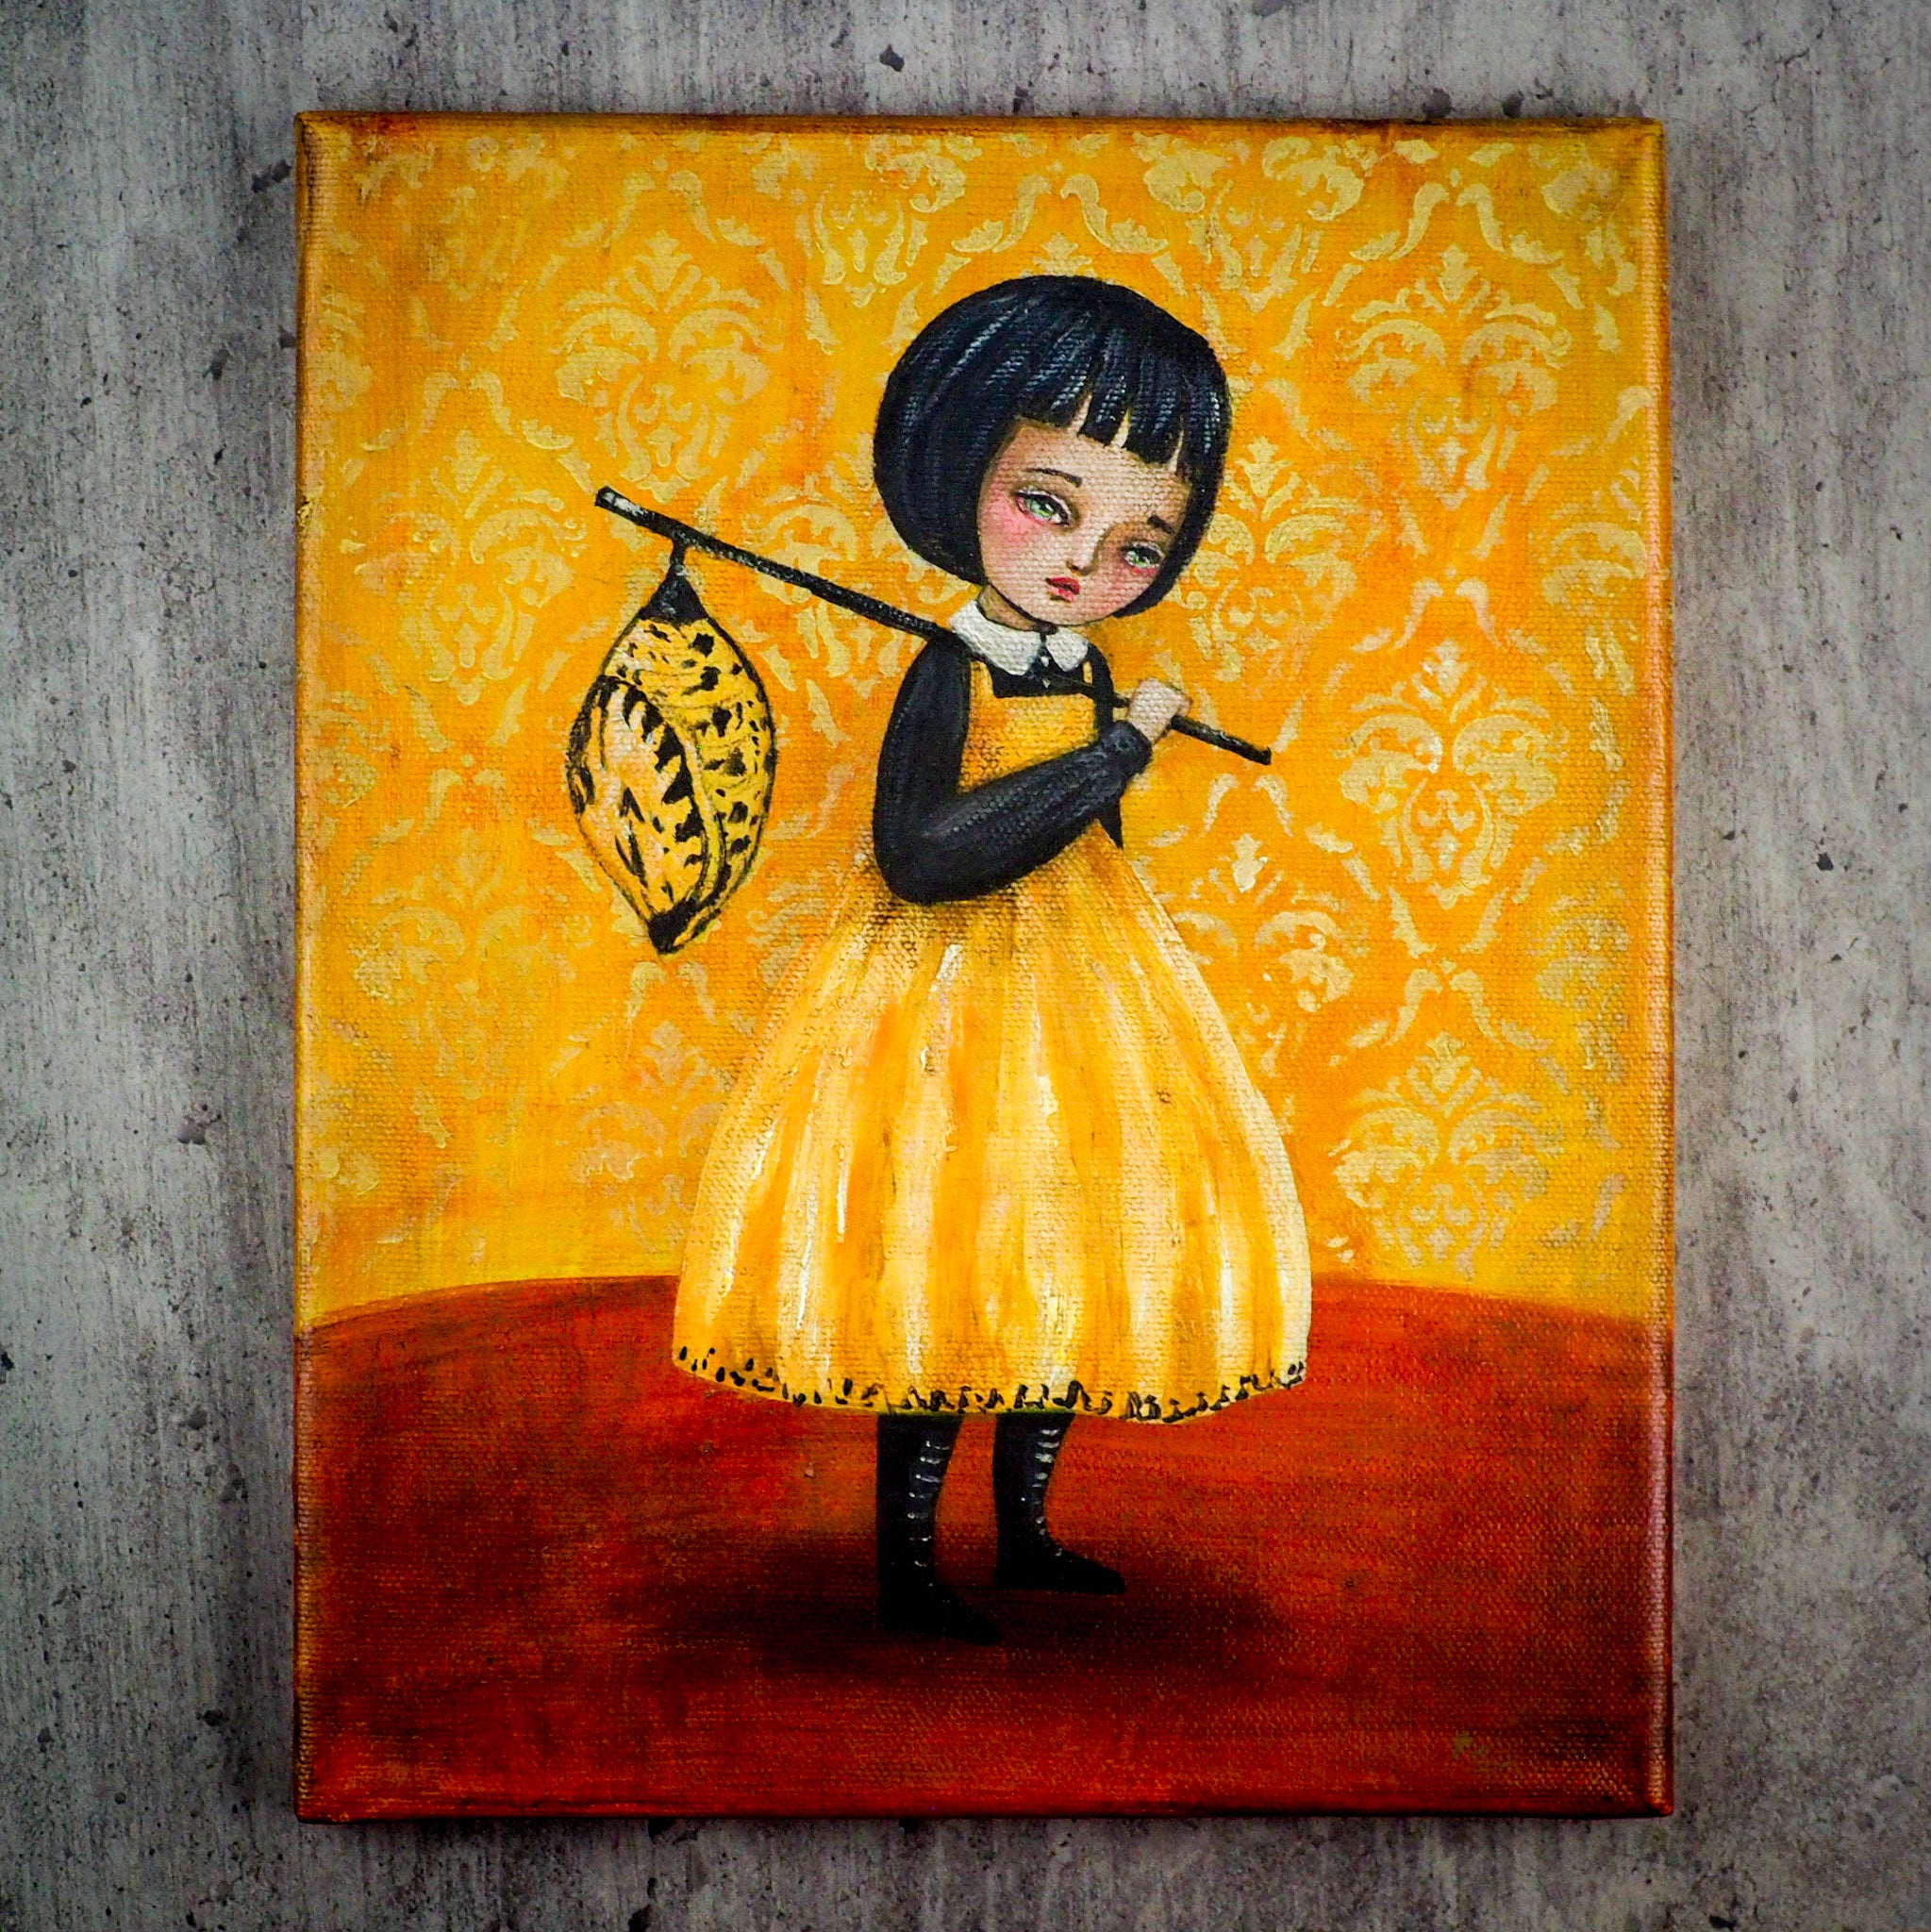 Yellow butterfly girl carries chrysalis on painting by Danita. Surrealist image of girl with Folk Art primitive influences.